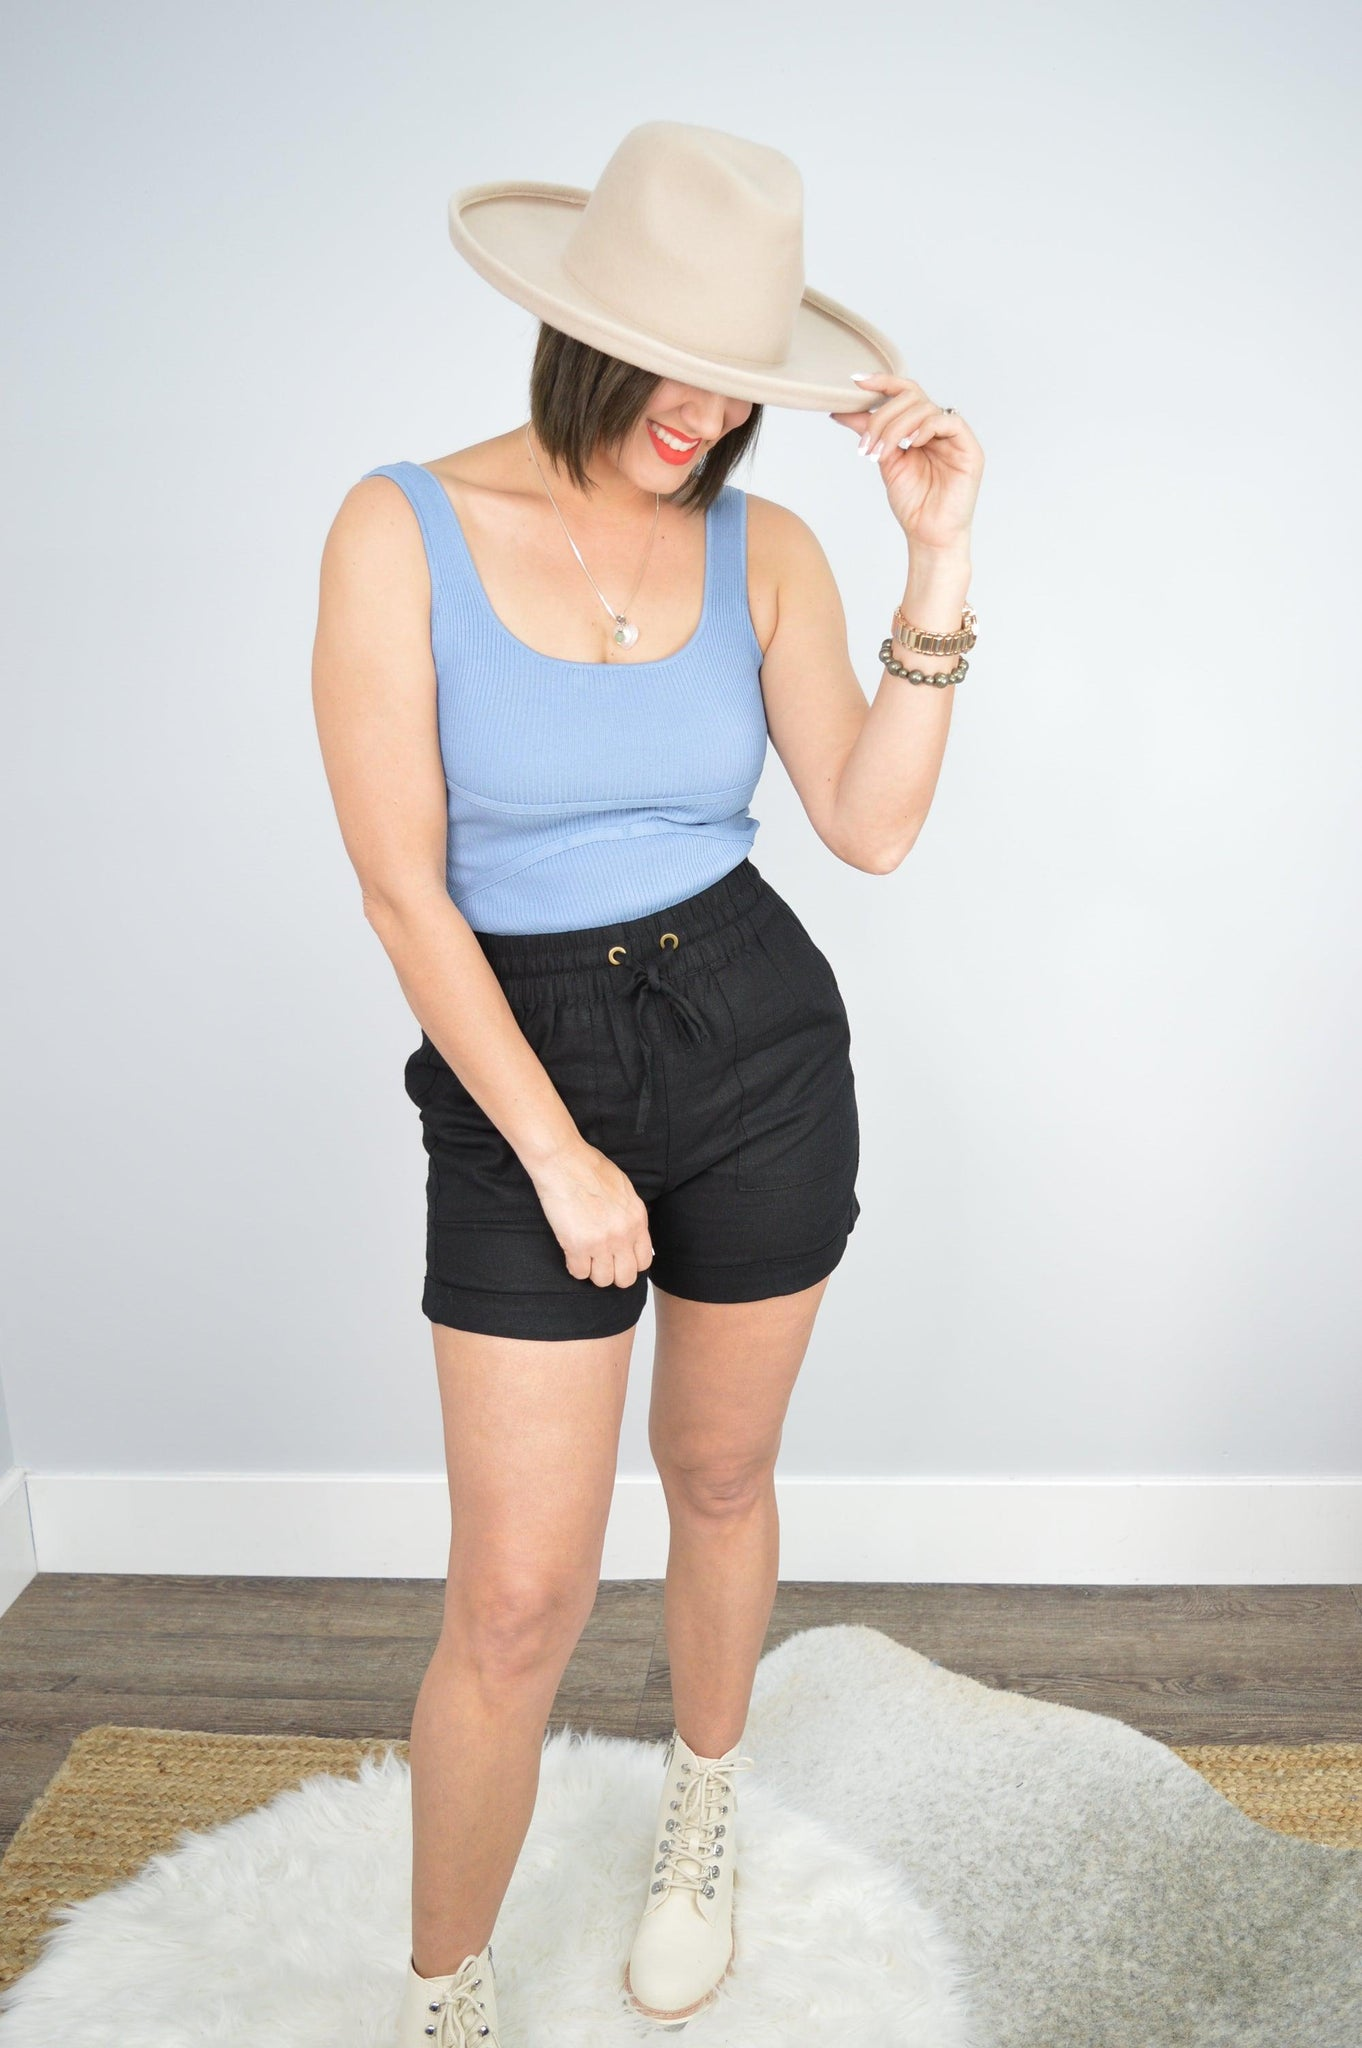 Gracie Claire Maxi Dress - Tara Lynn's Boutique